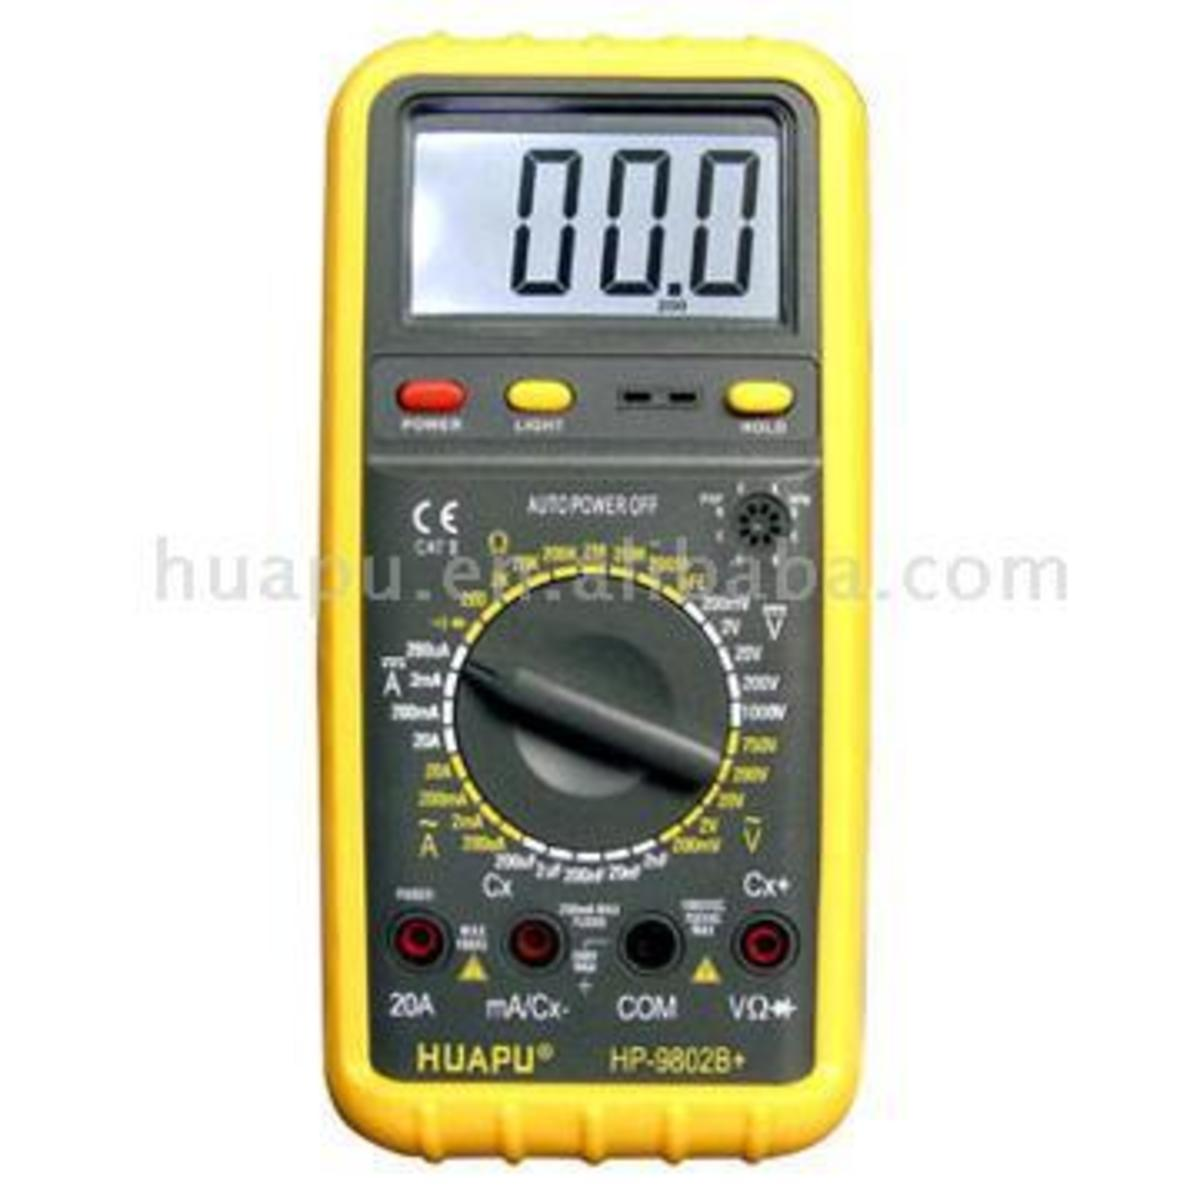 Digital multimeter, look for resistance settings or OHMS symbol